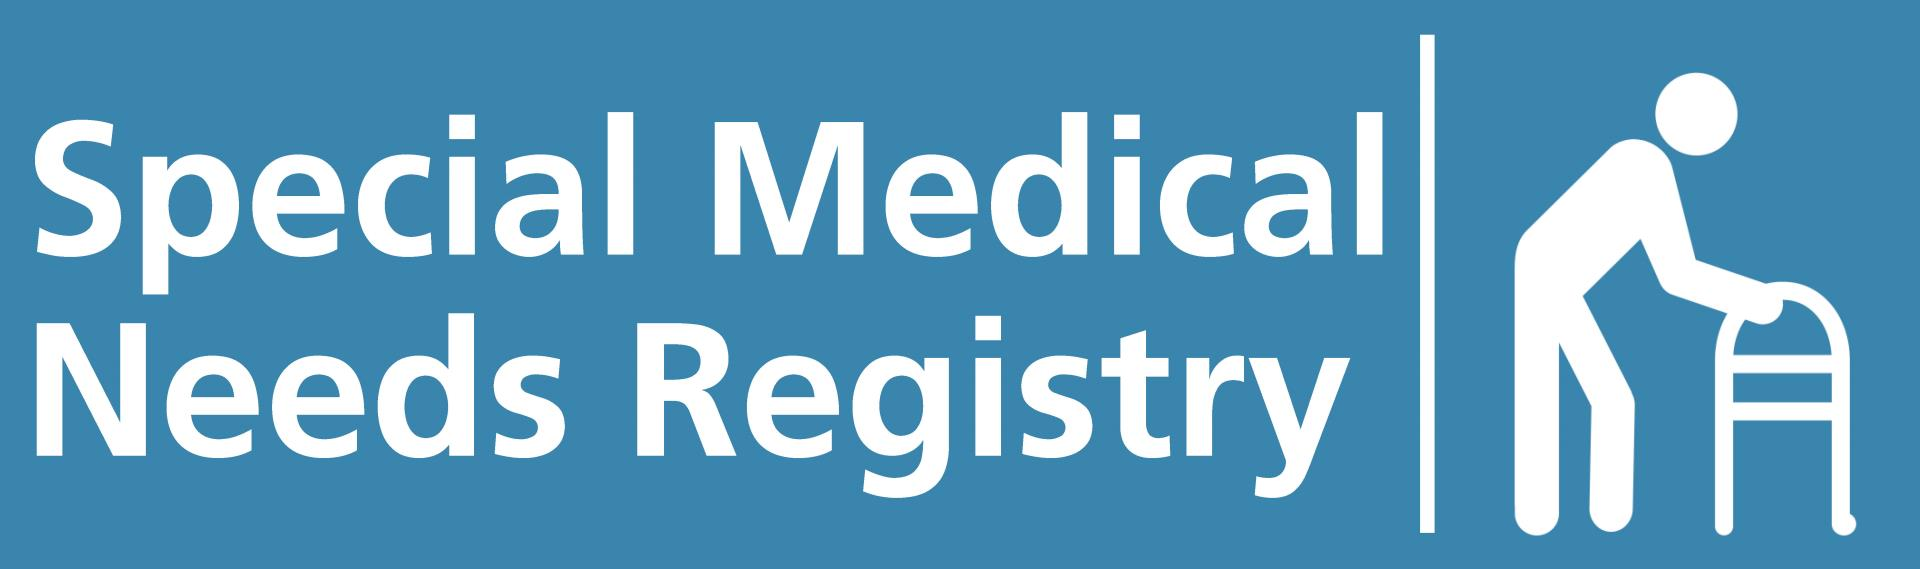 Special Medical Needs Registry | Dare County, NC